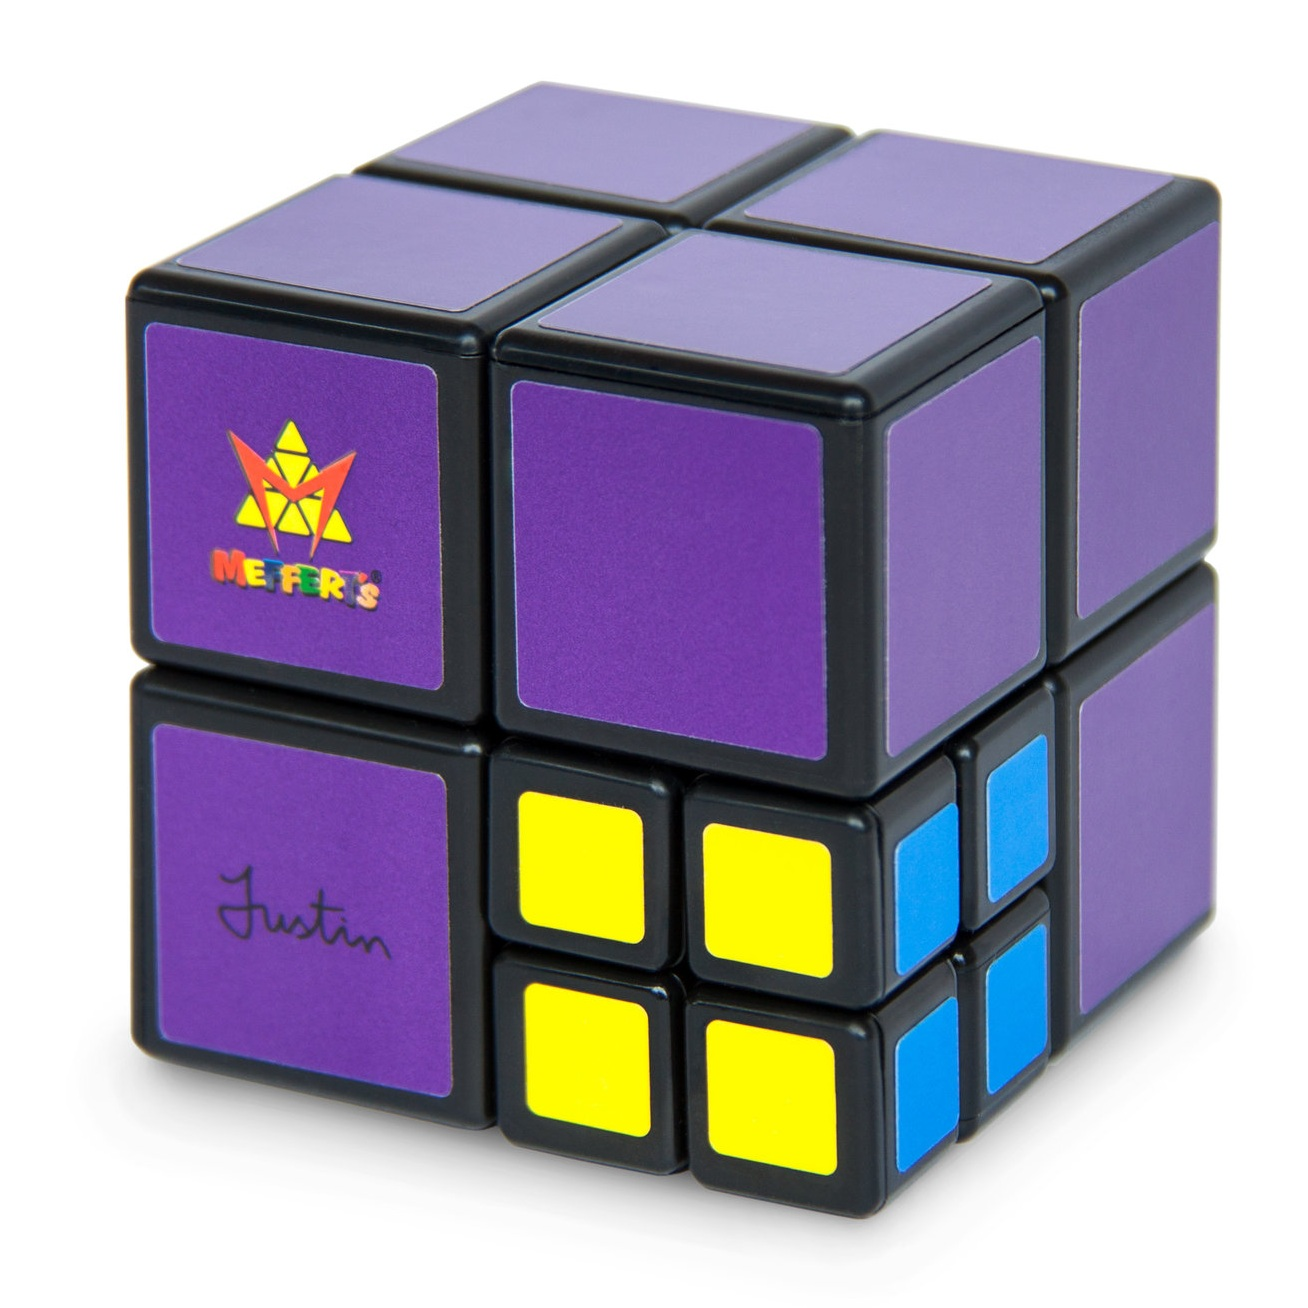 01-product-PocketCube.jpg